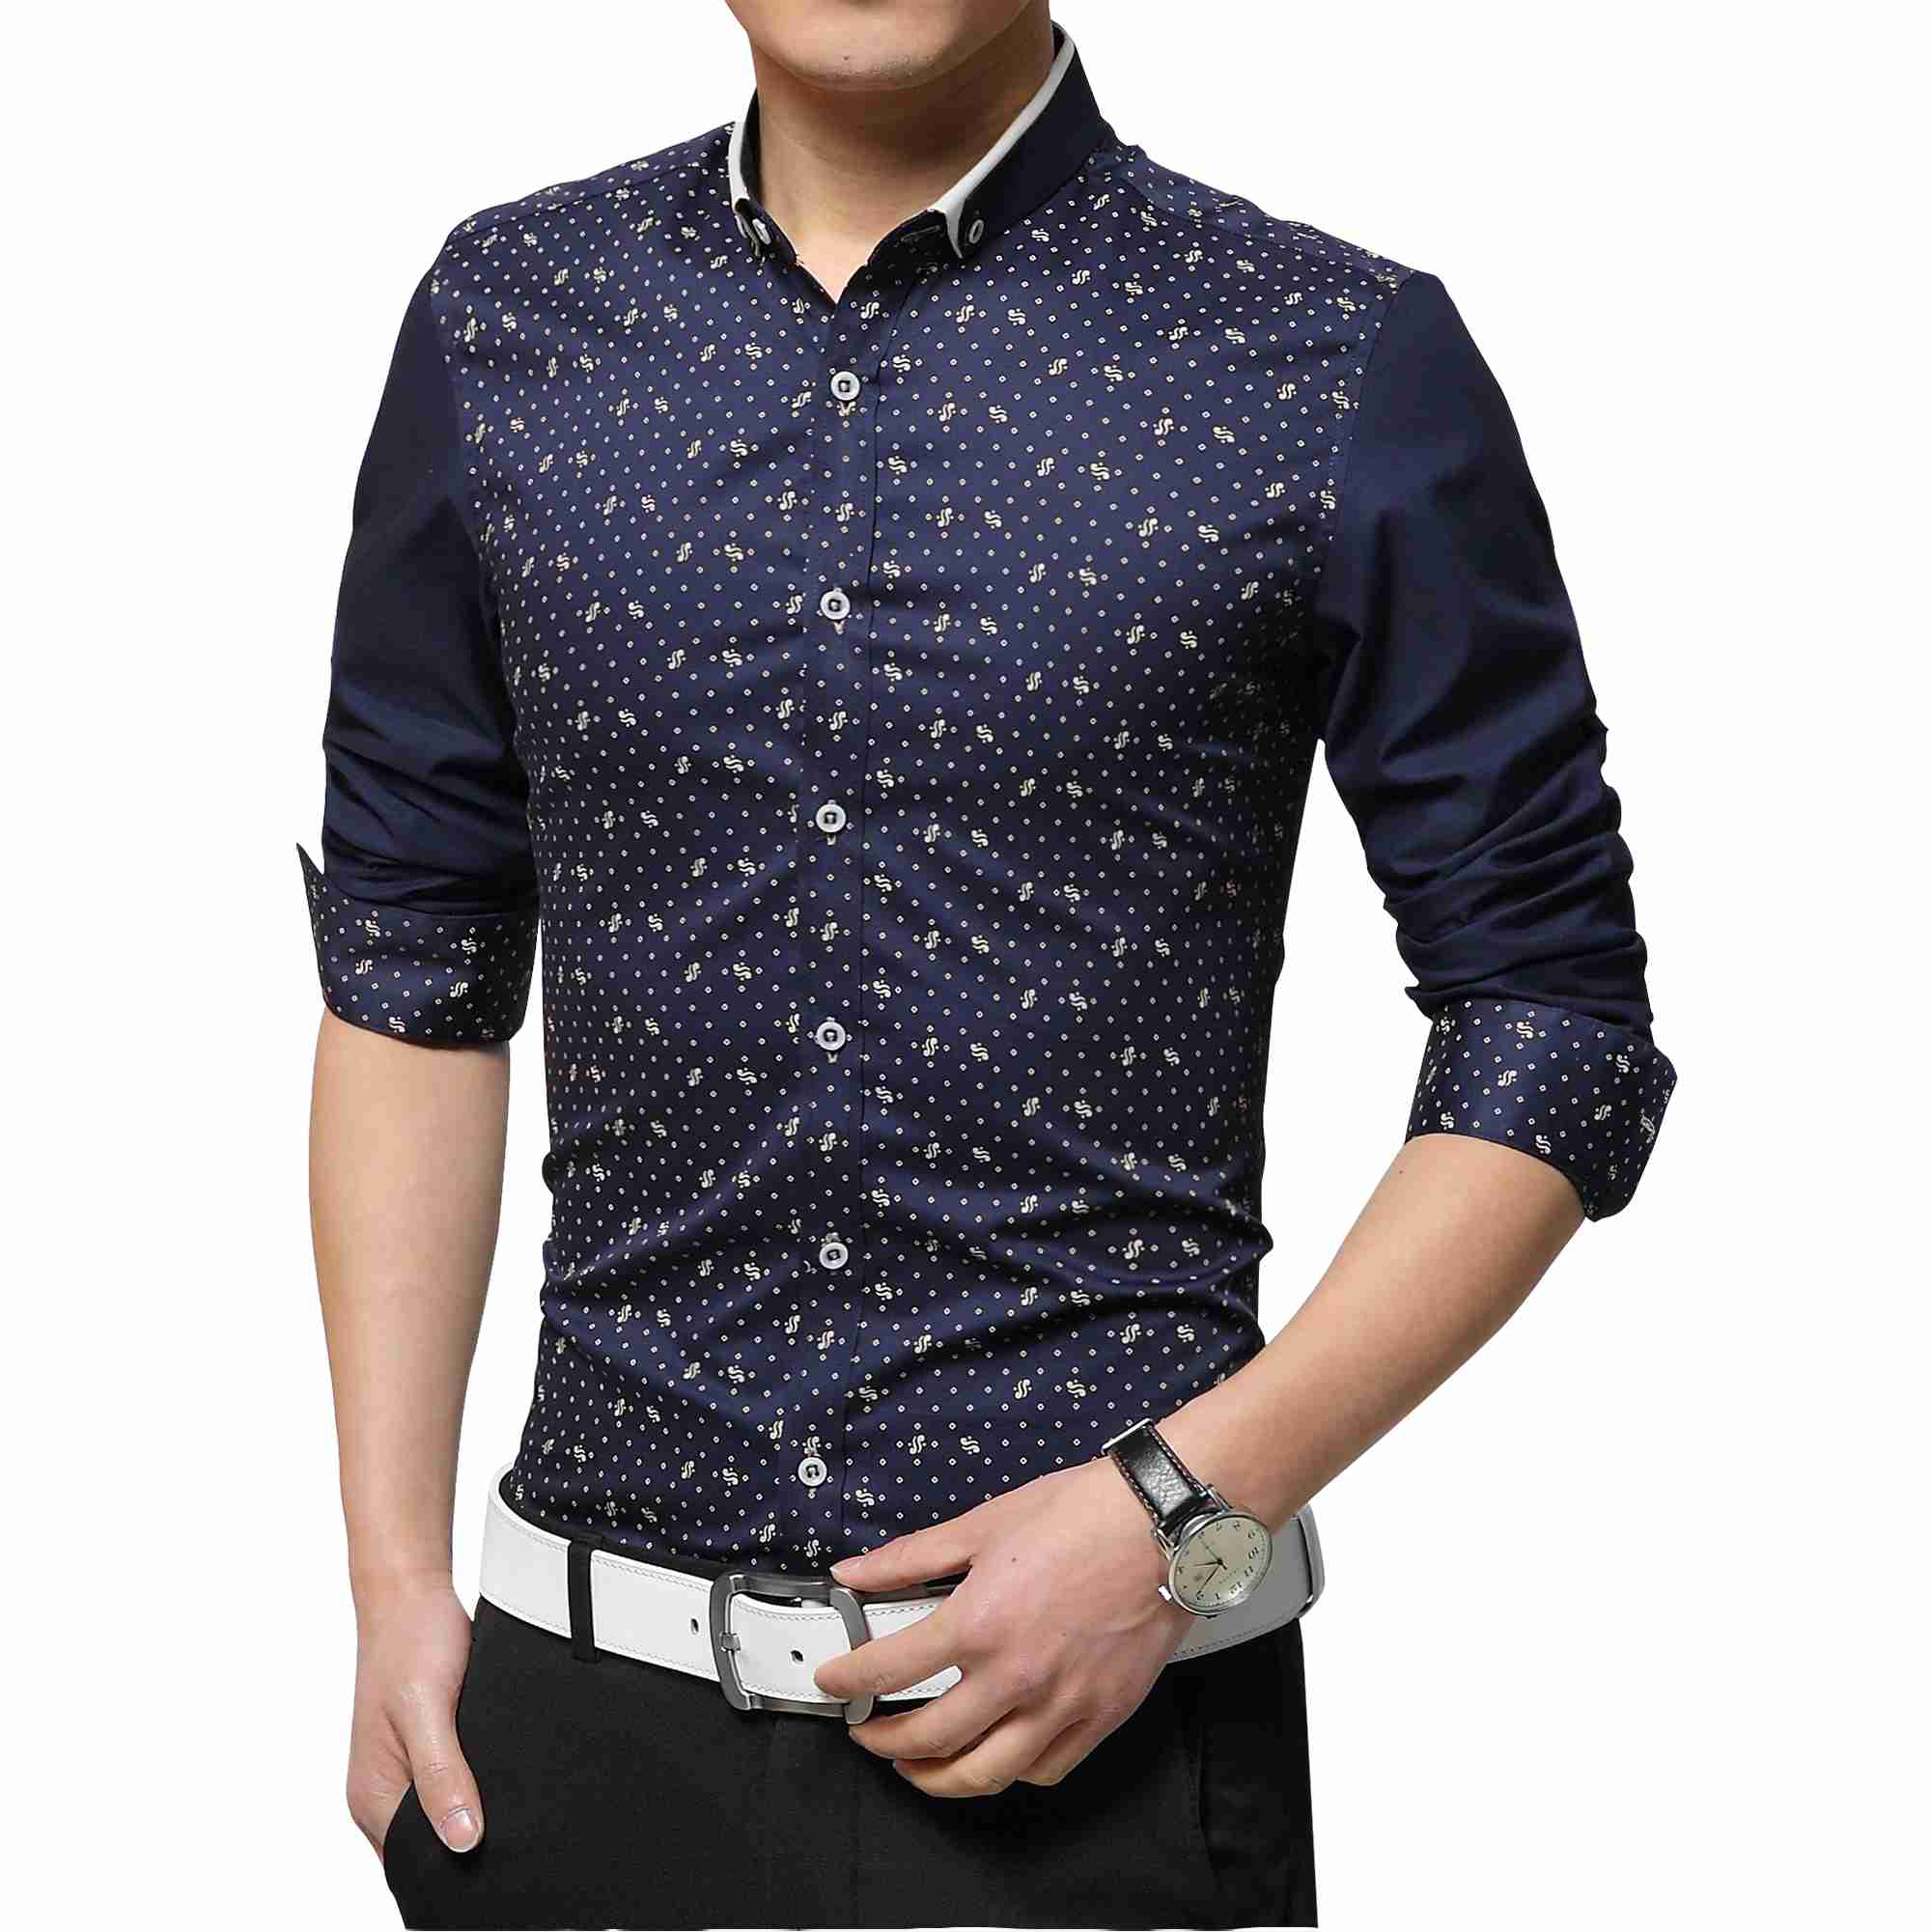 Aliexpress.com : Buy Men long sleeve cotton non iron shirts ...